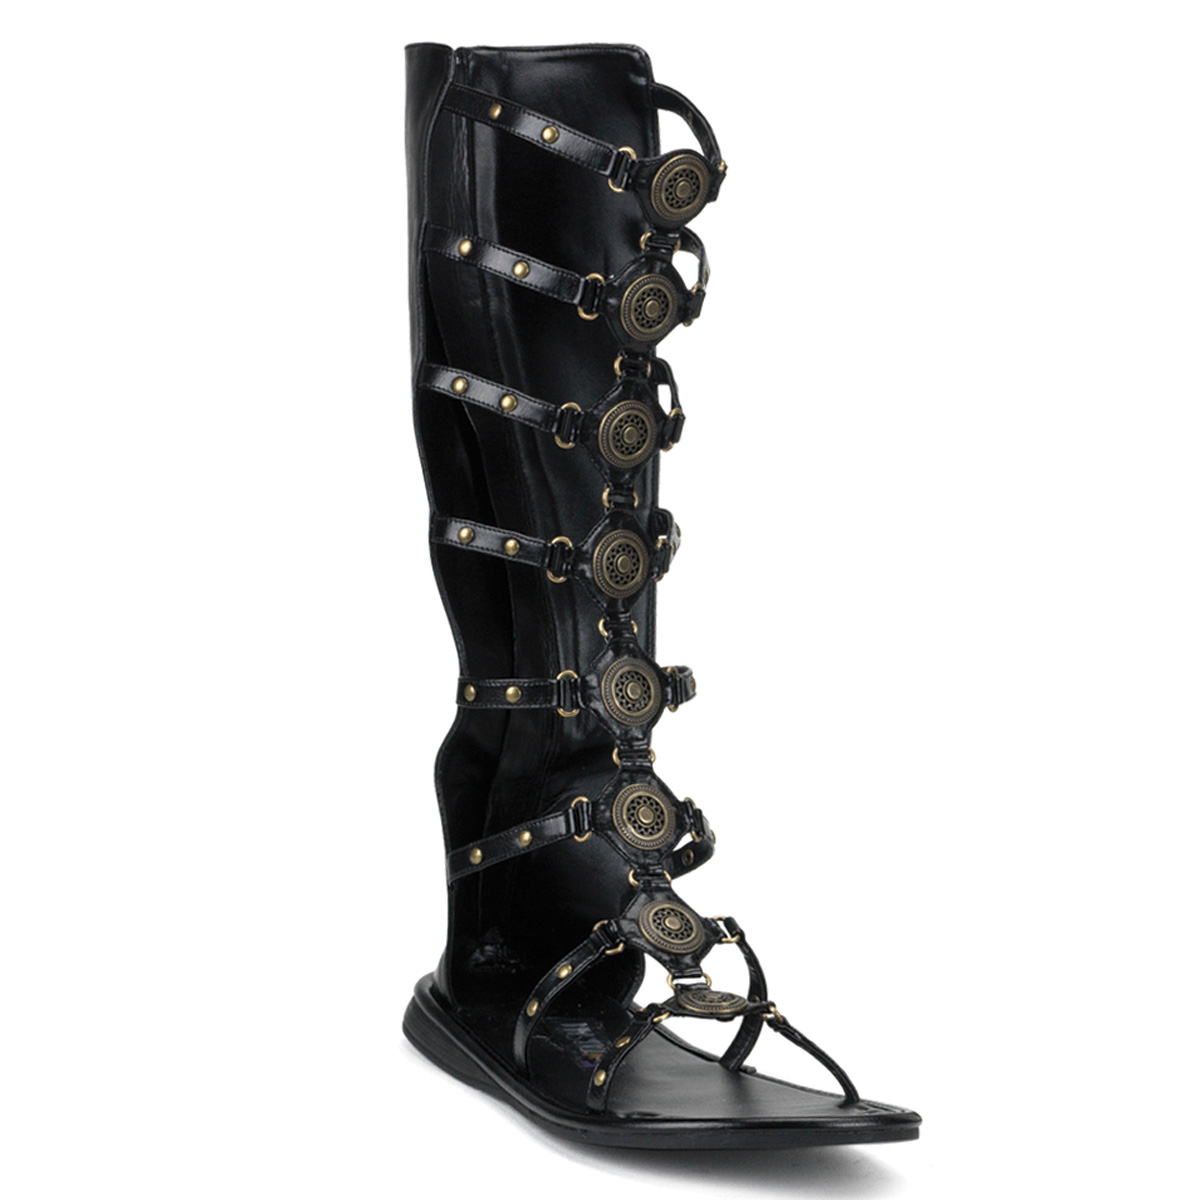 FUNTASMA Roman-15 Series Costume Blk Pu Costume Series Cosplay Halloween Gladiator Sandal c94e5a